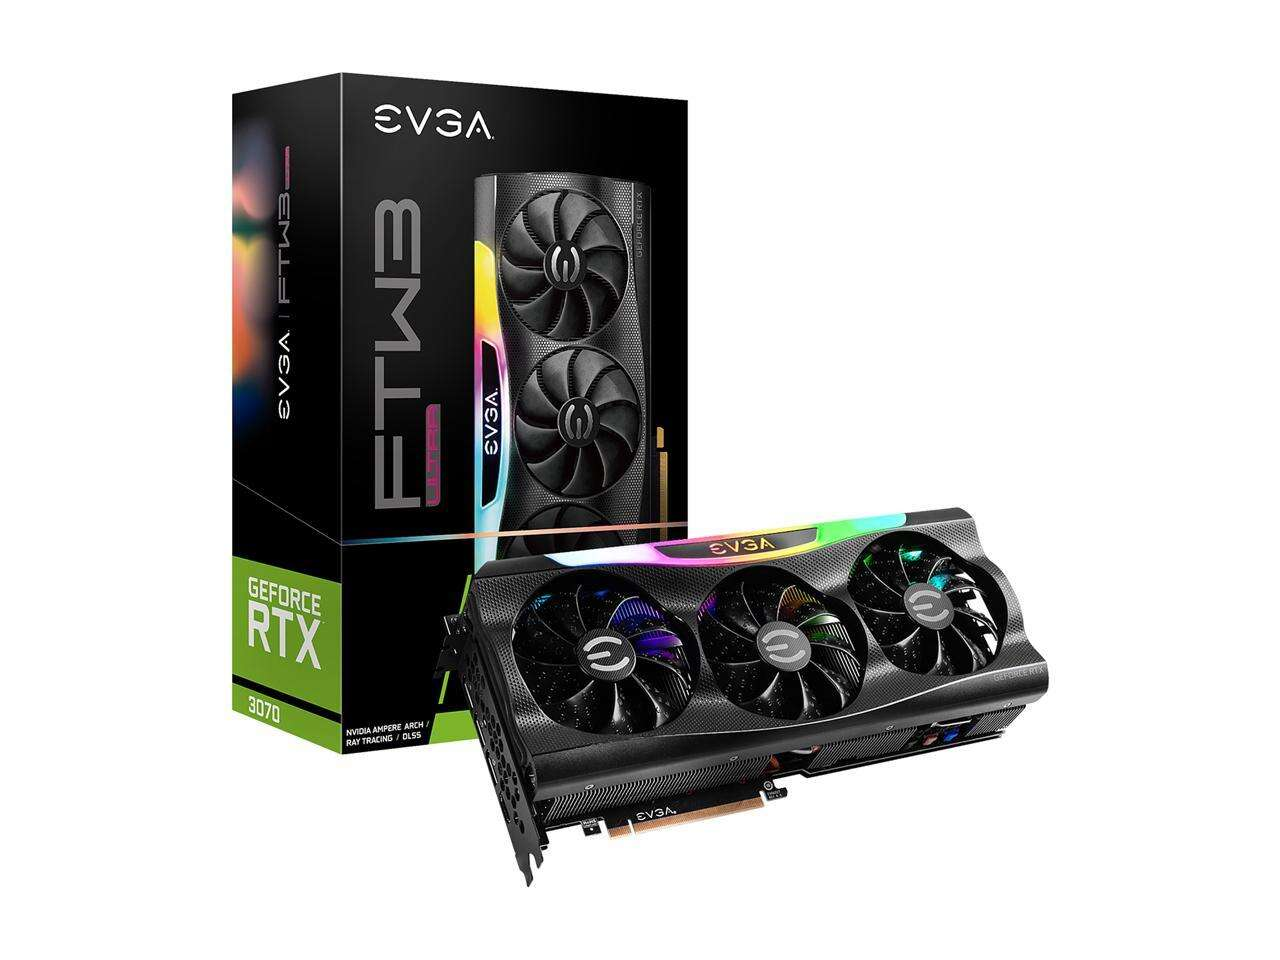 EVGA Video Card  GeForce RTX 3070 FTW3 ULTRA 8GB GDDR6 iCX3 Technology + 750W PSU Bundle